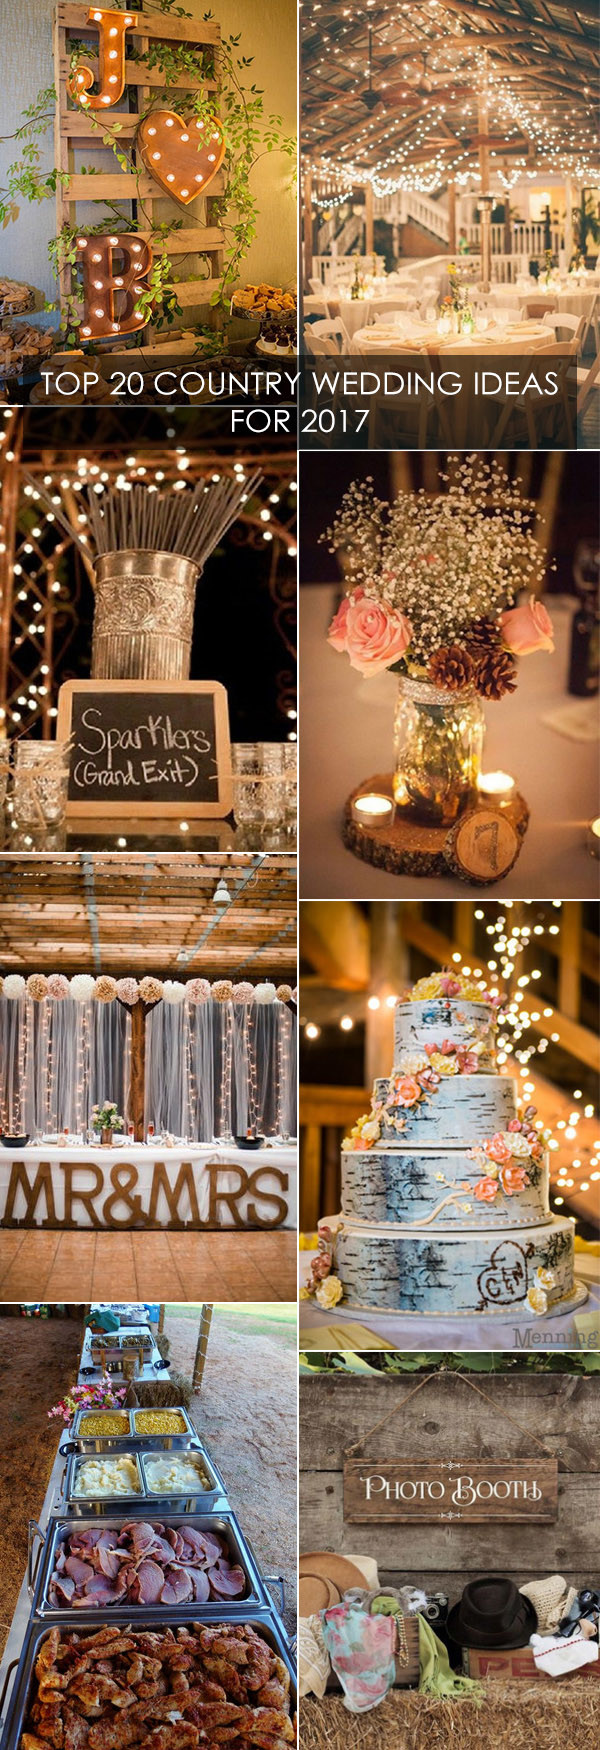 top 20 country wedding ideas for 2017 trends